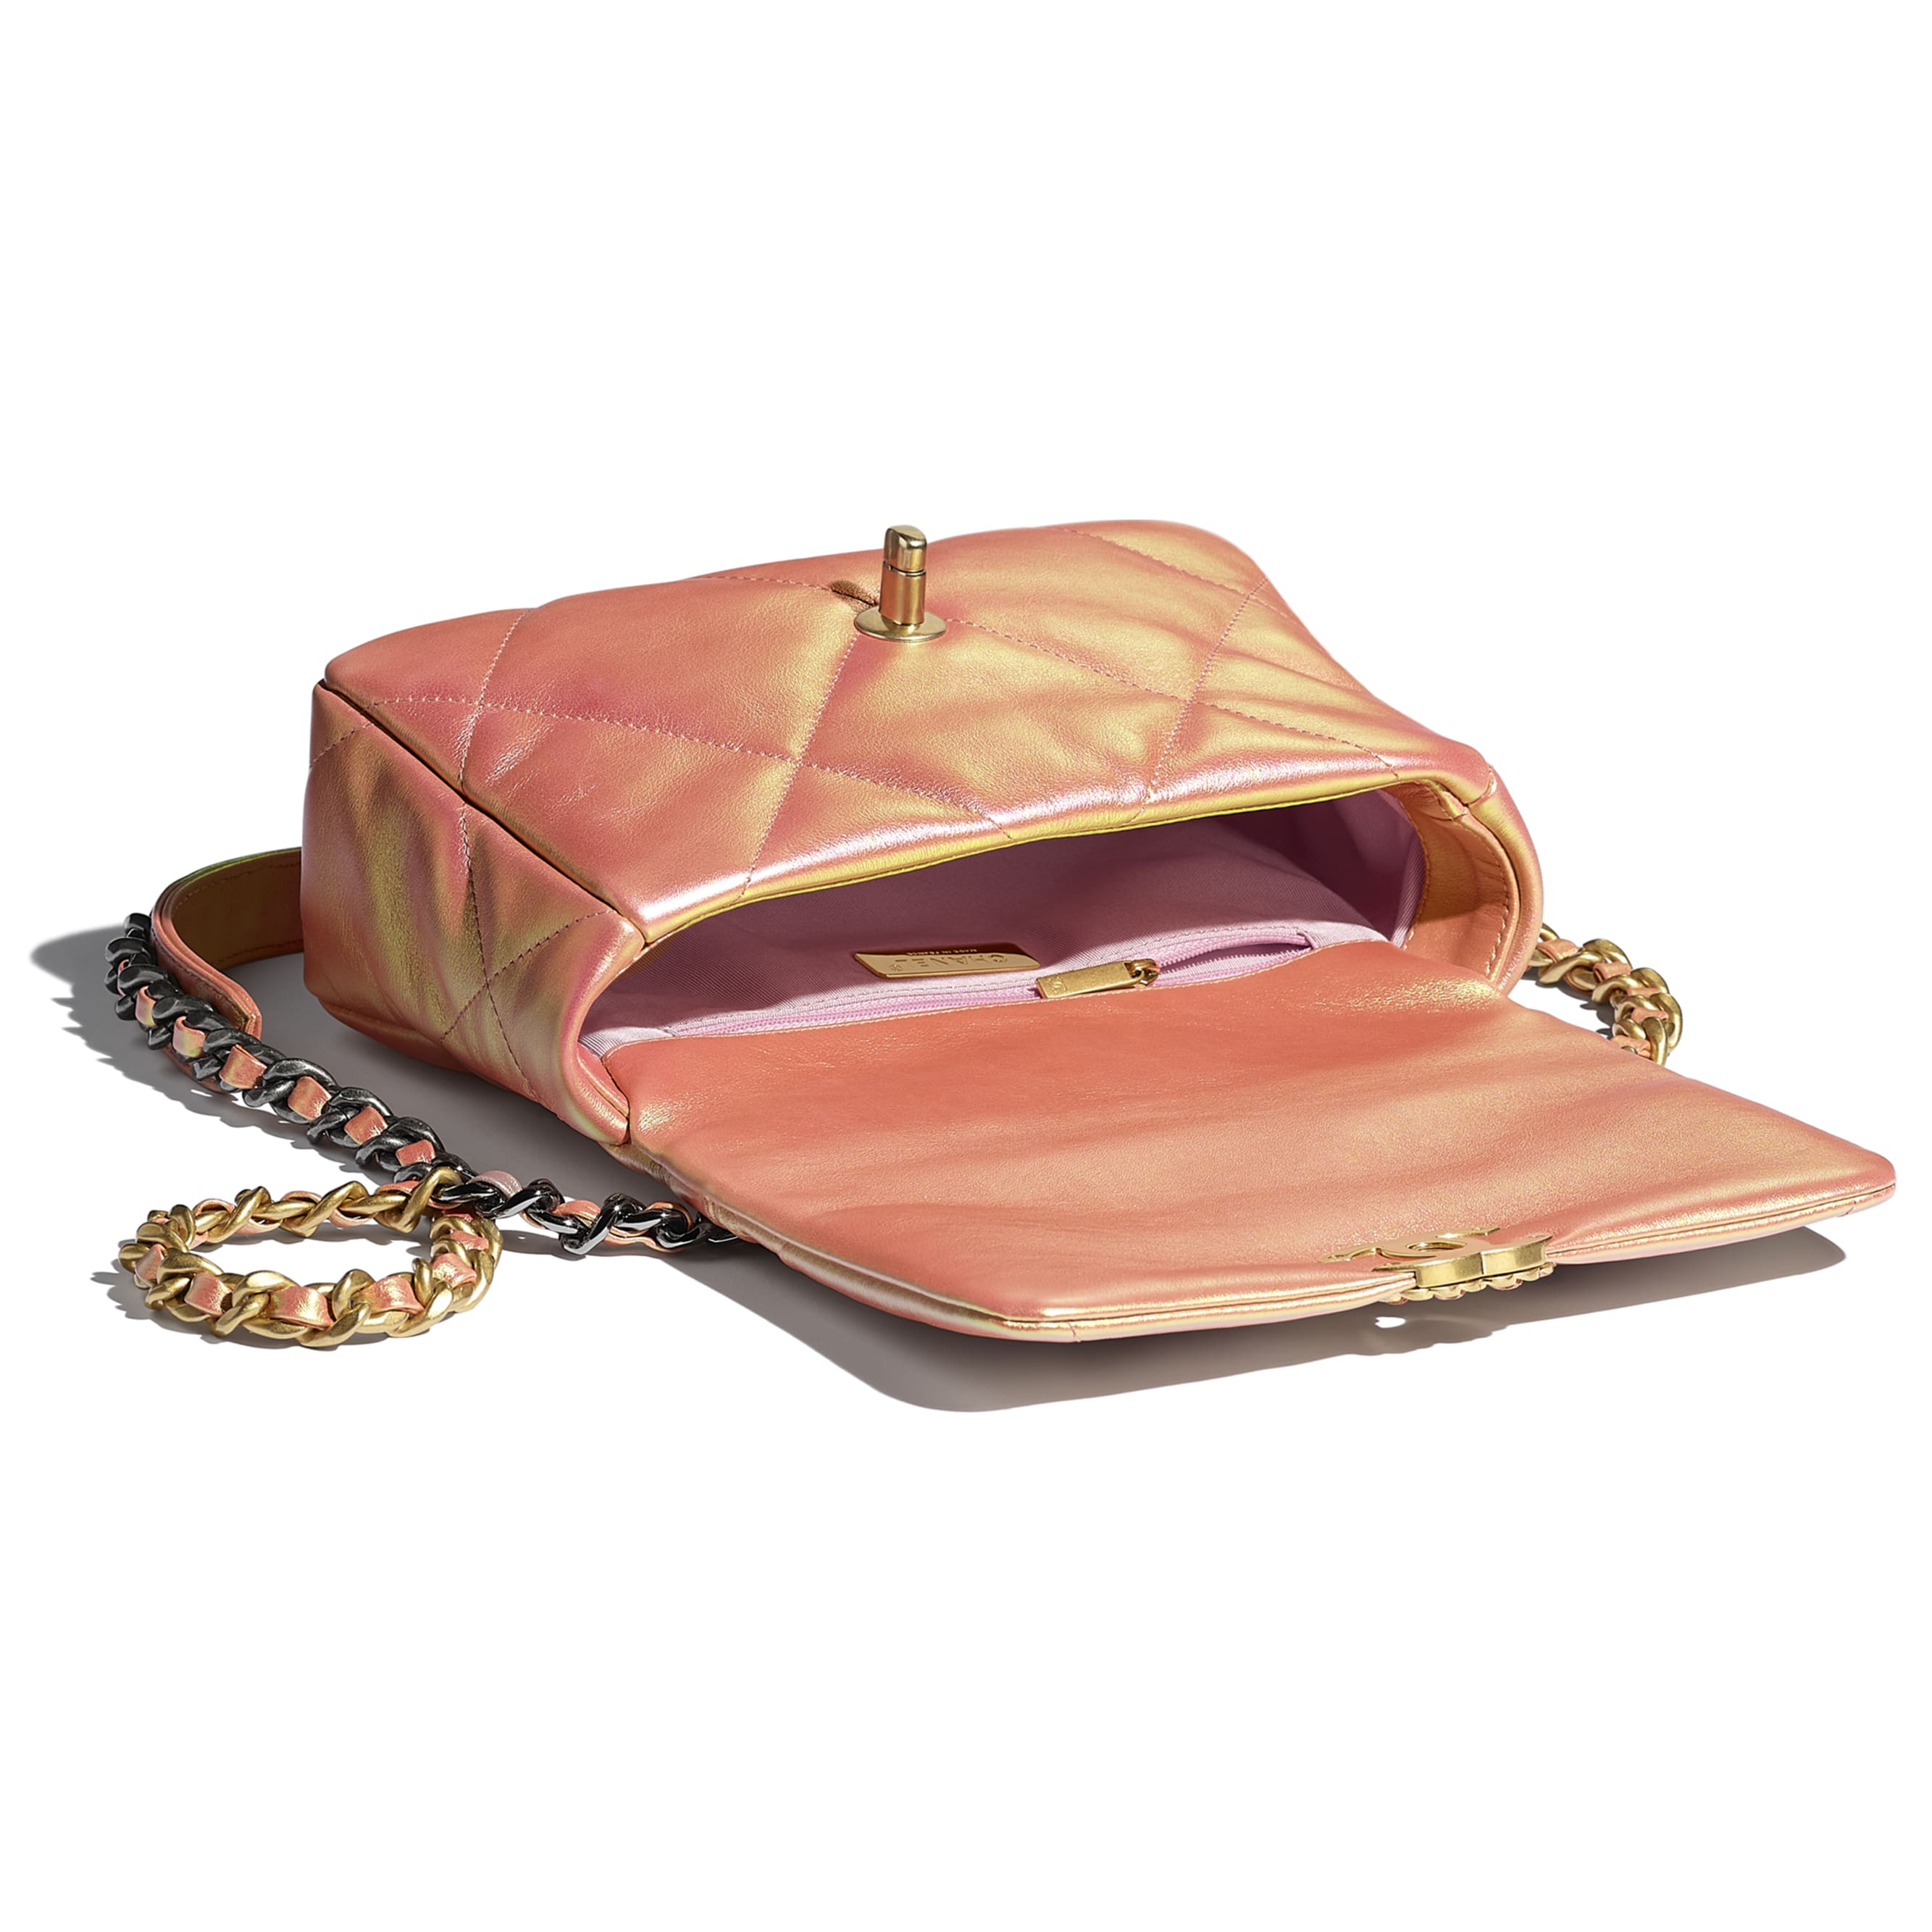 CHANEL 19 Flap Bag - Pink - Iridescent Calfskin, Gold-Tone, Silver-Tone & Ruthenium-Finish Metal - CHANEL - Other view - see standard sized version